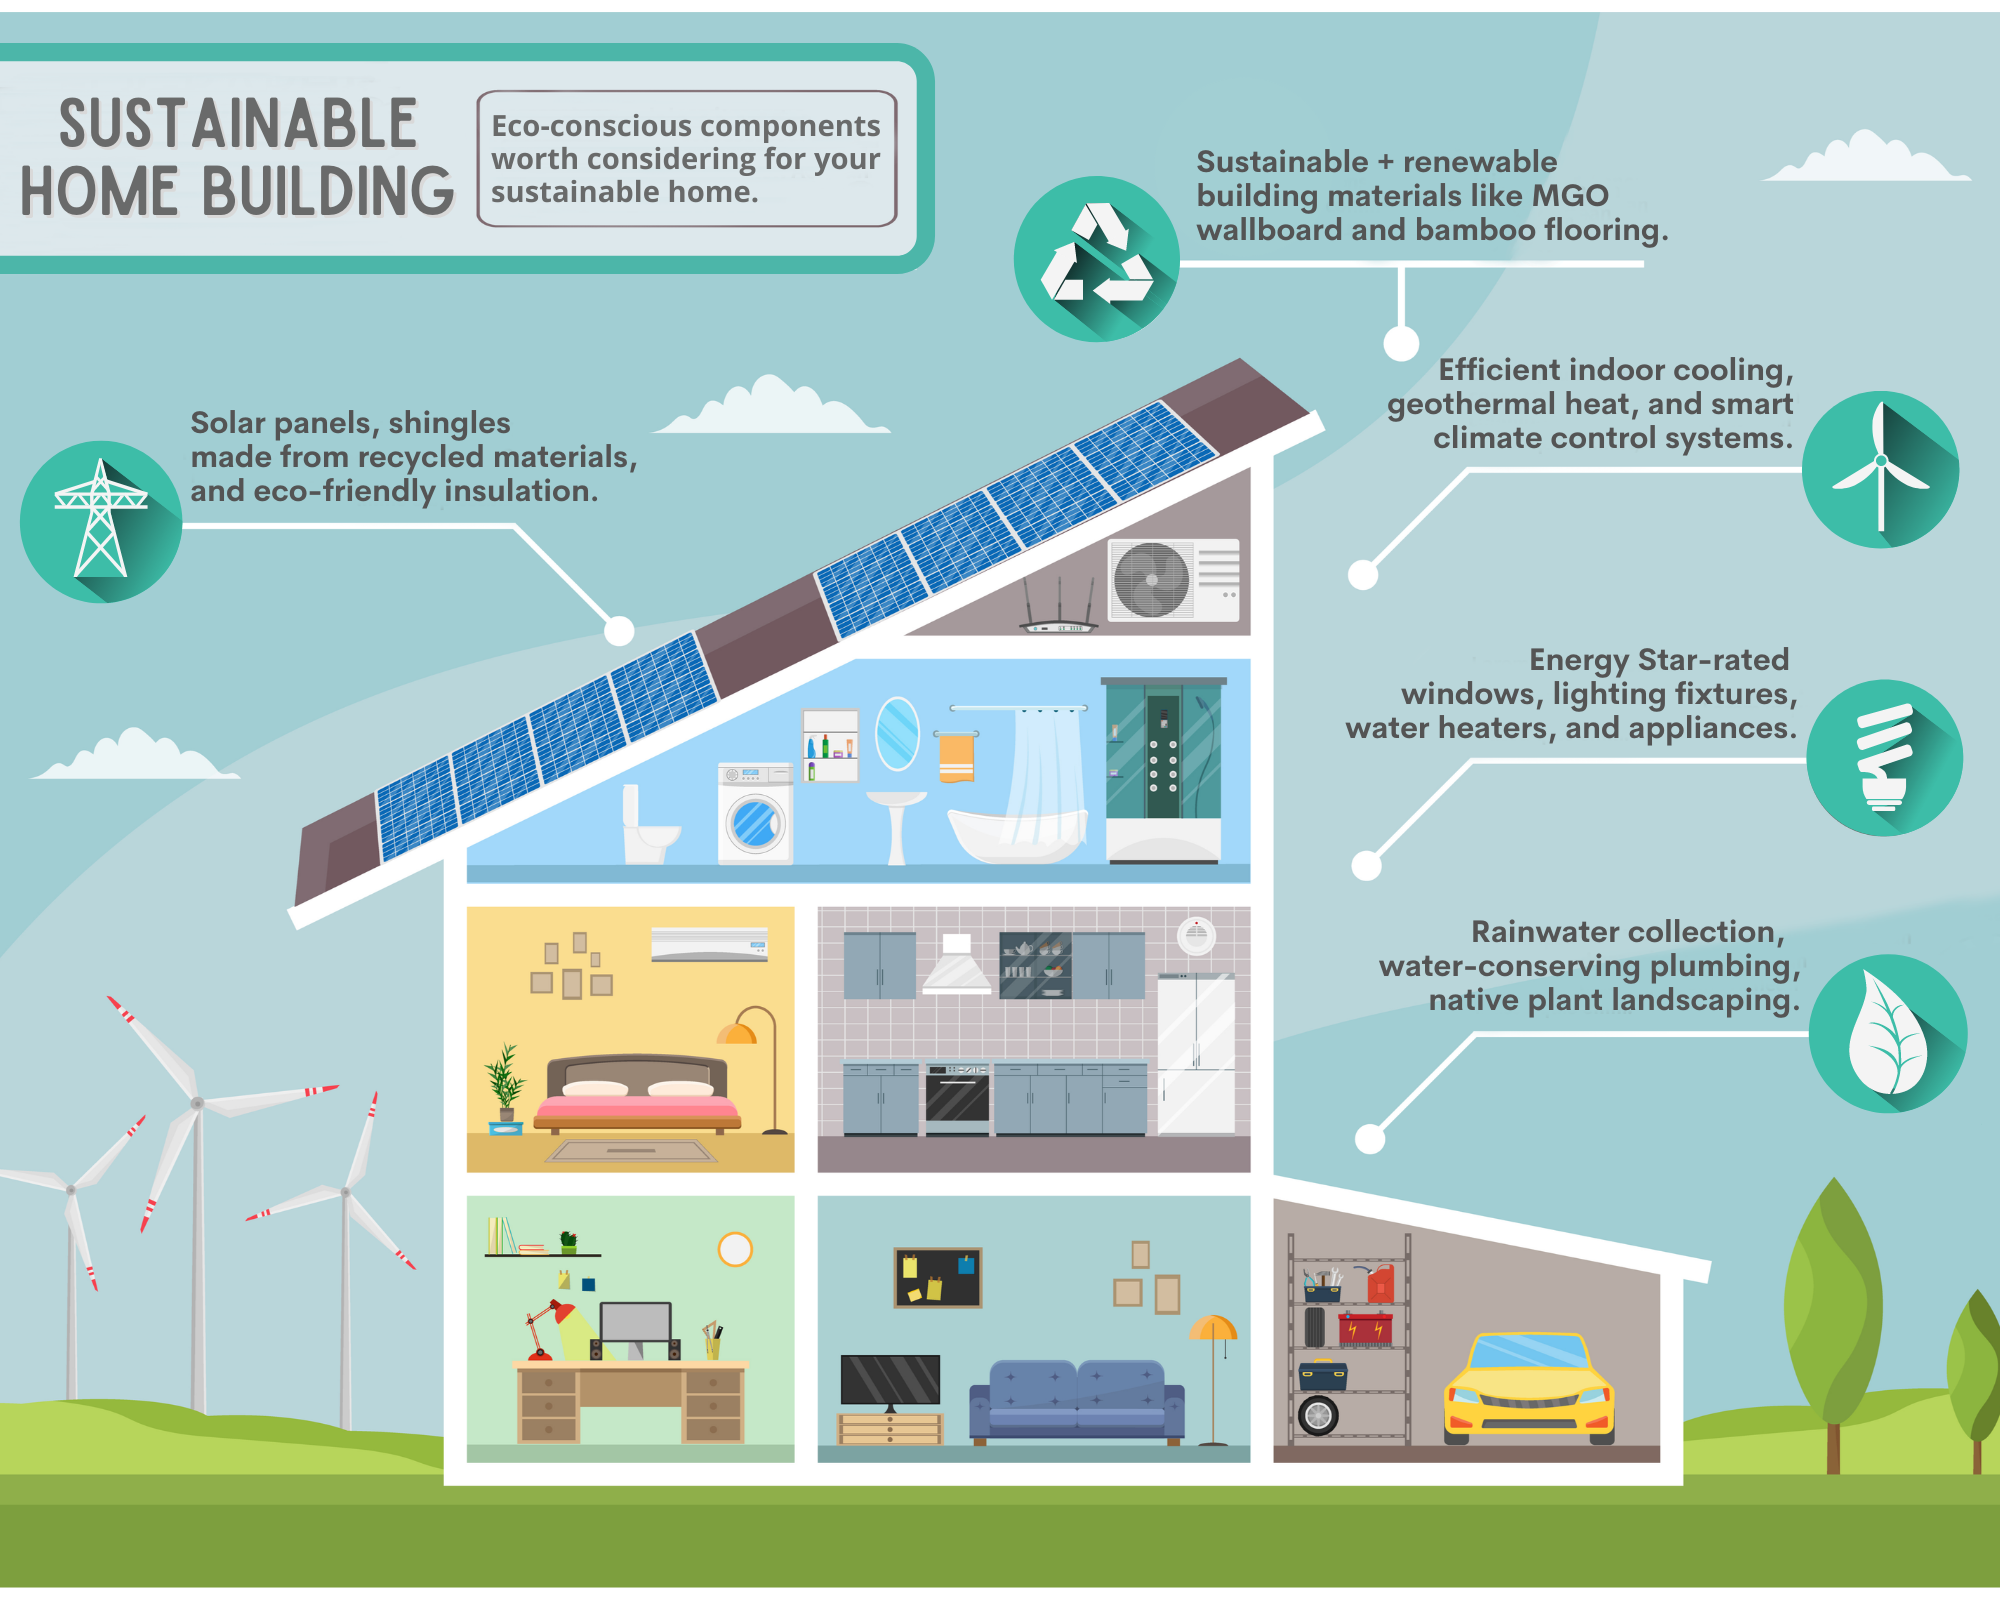 sustainable-home-build-infographic